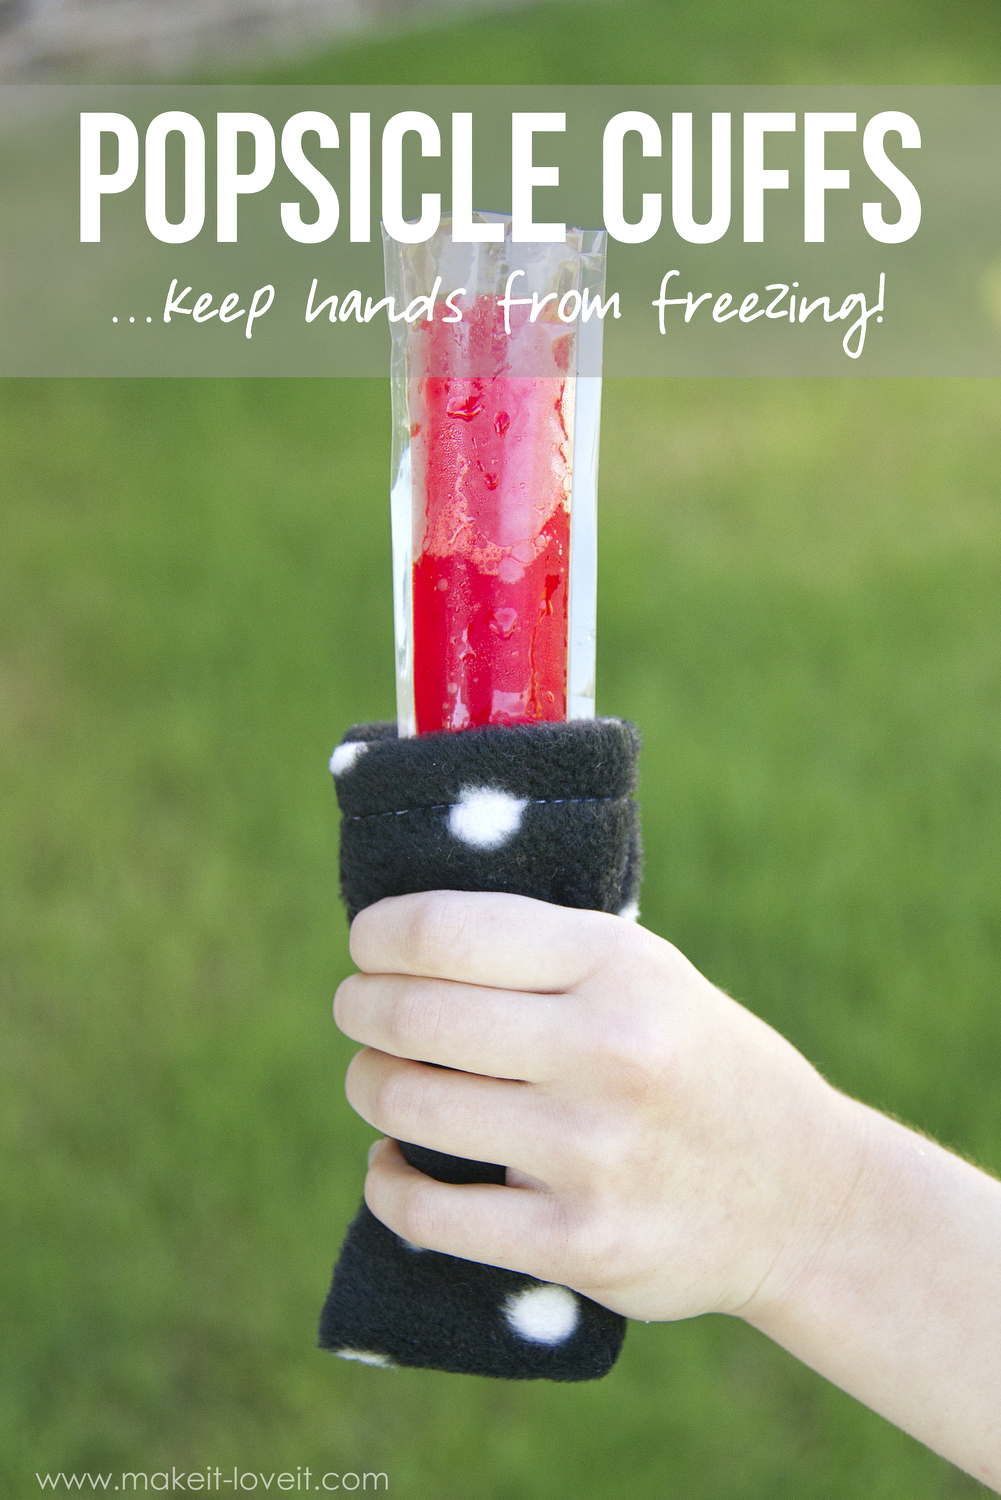 Popsicle Cuffs…keep hands from freezing!